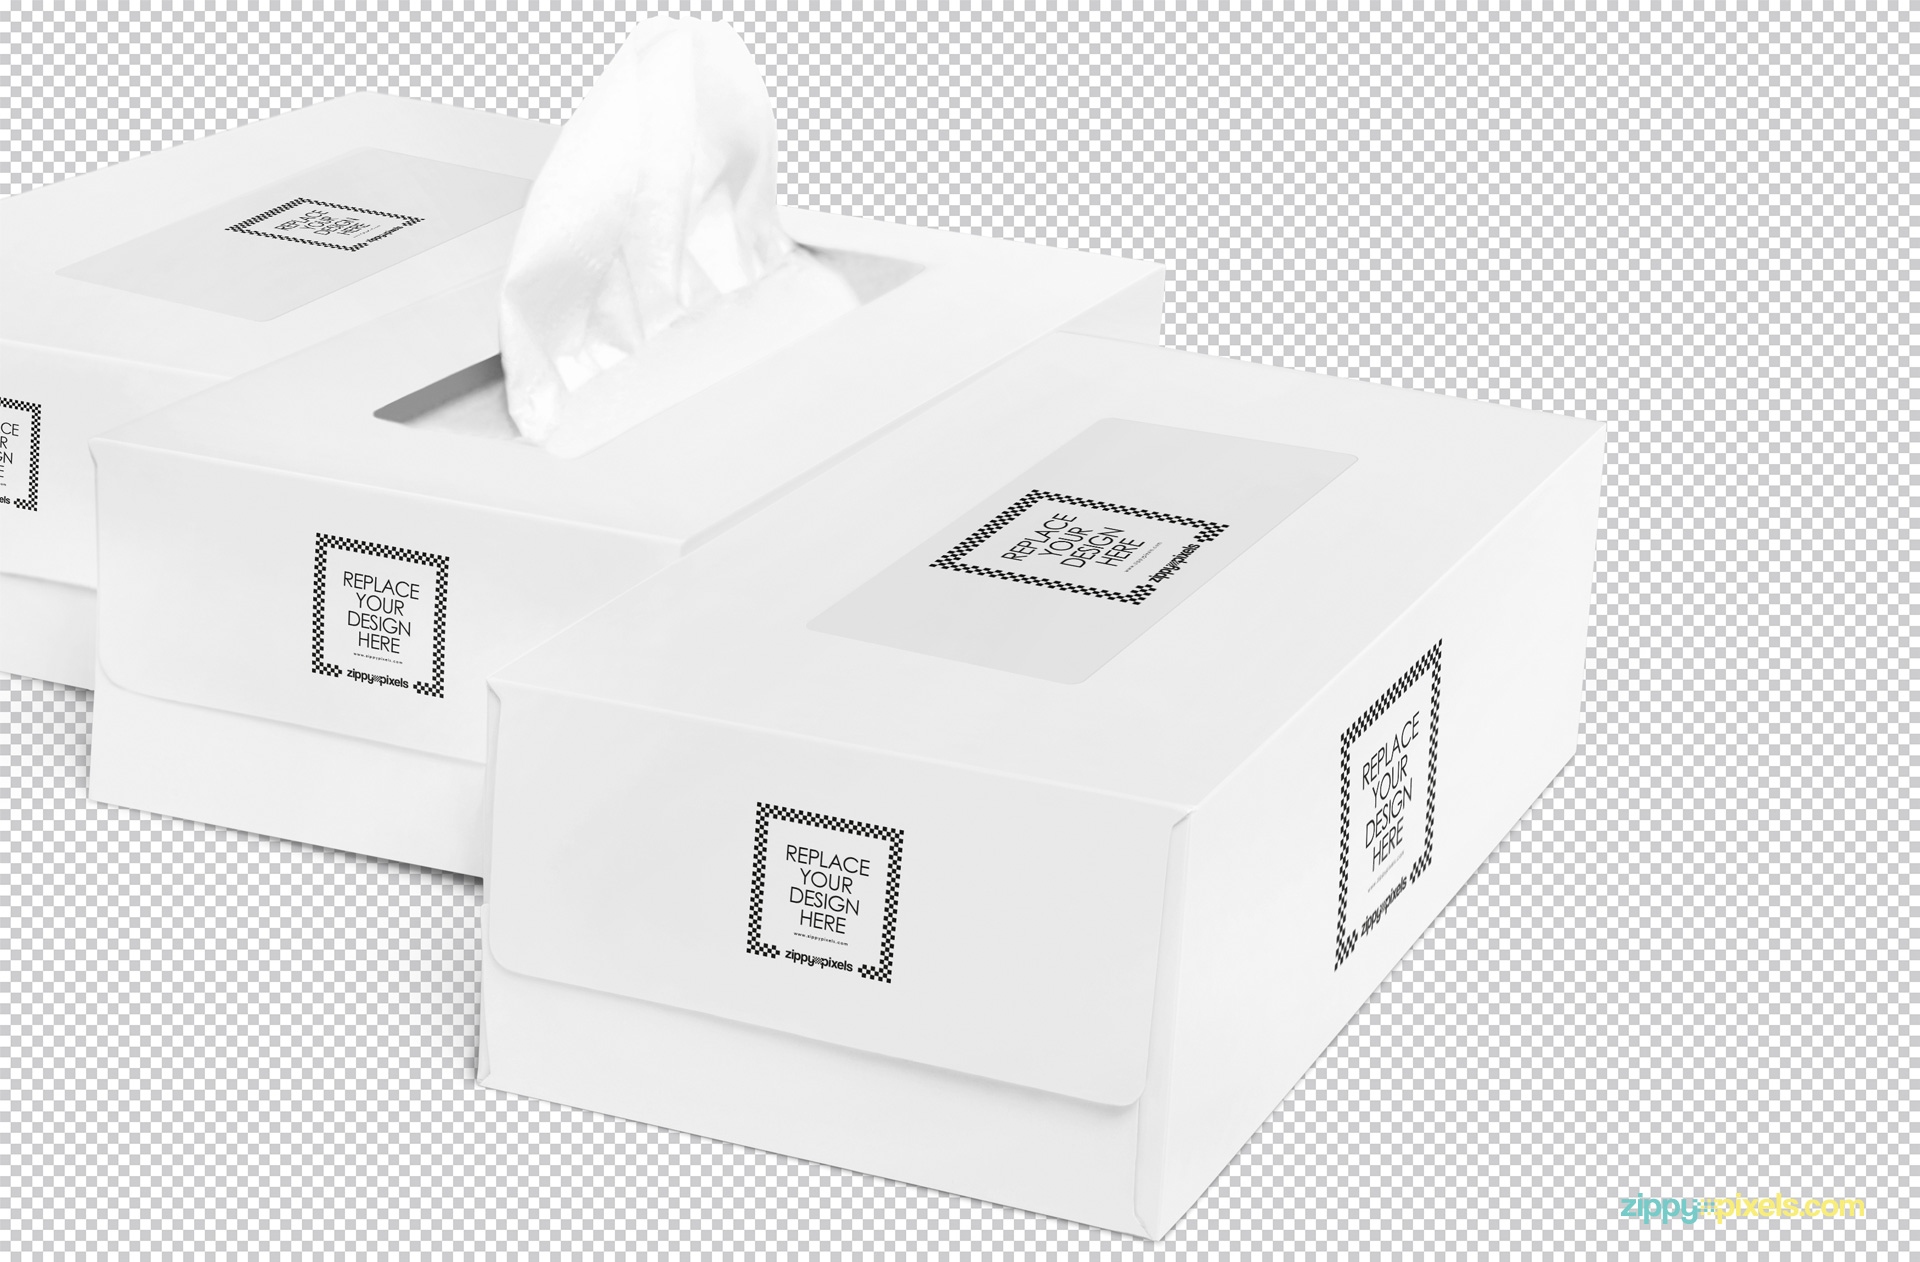 PSD of three plain white tissue boxes on the grey scale.